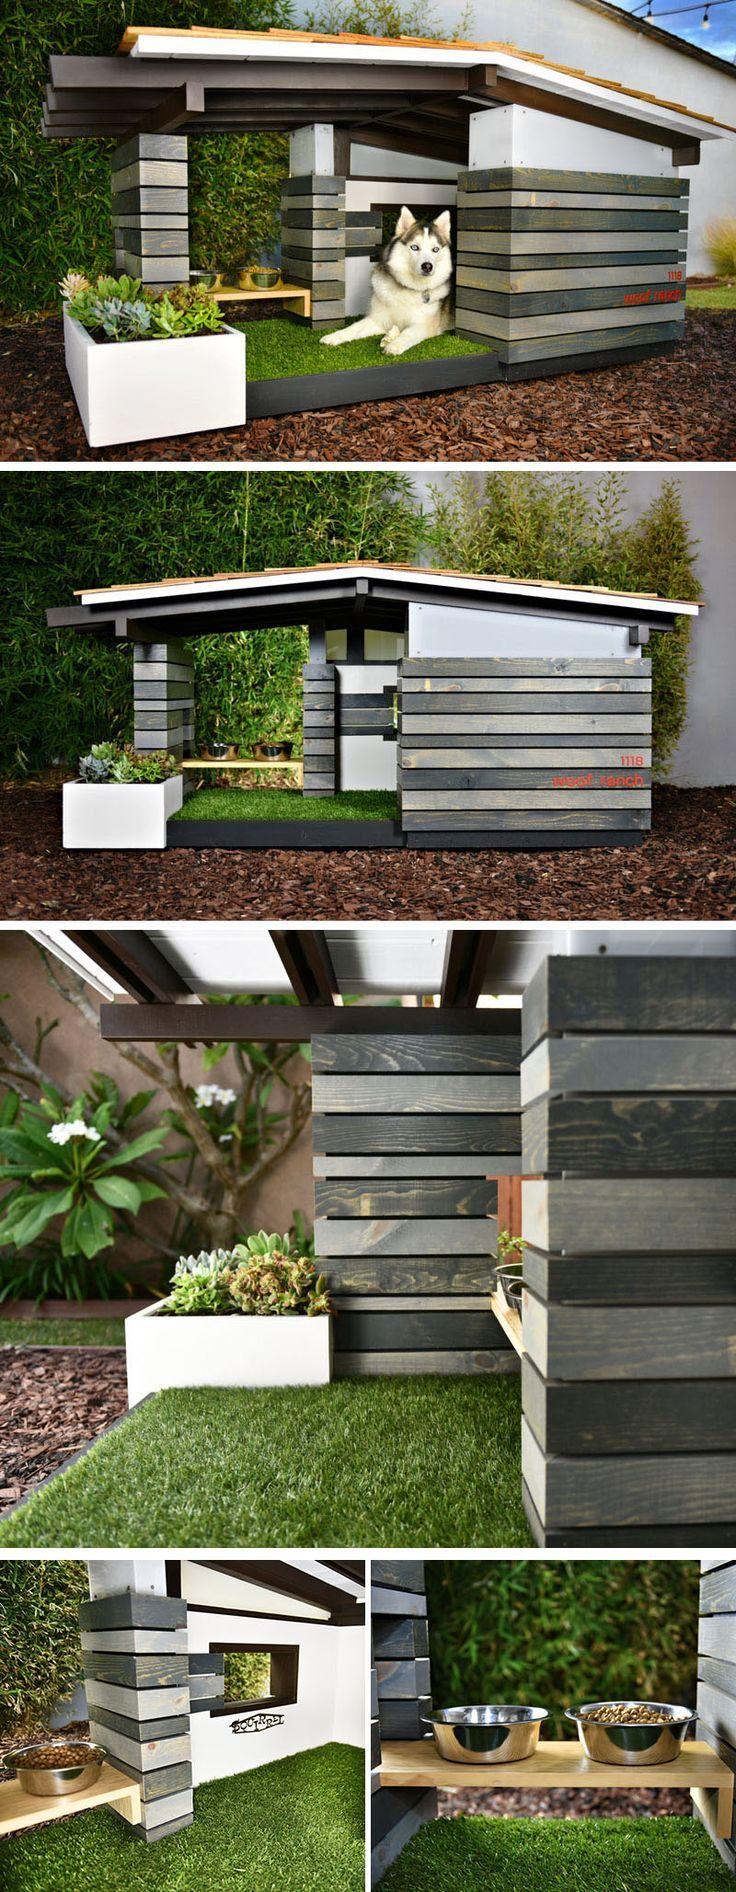 Get 20 Outdoor Dog Houses Ideas On Pinterest Without